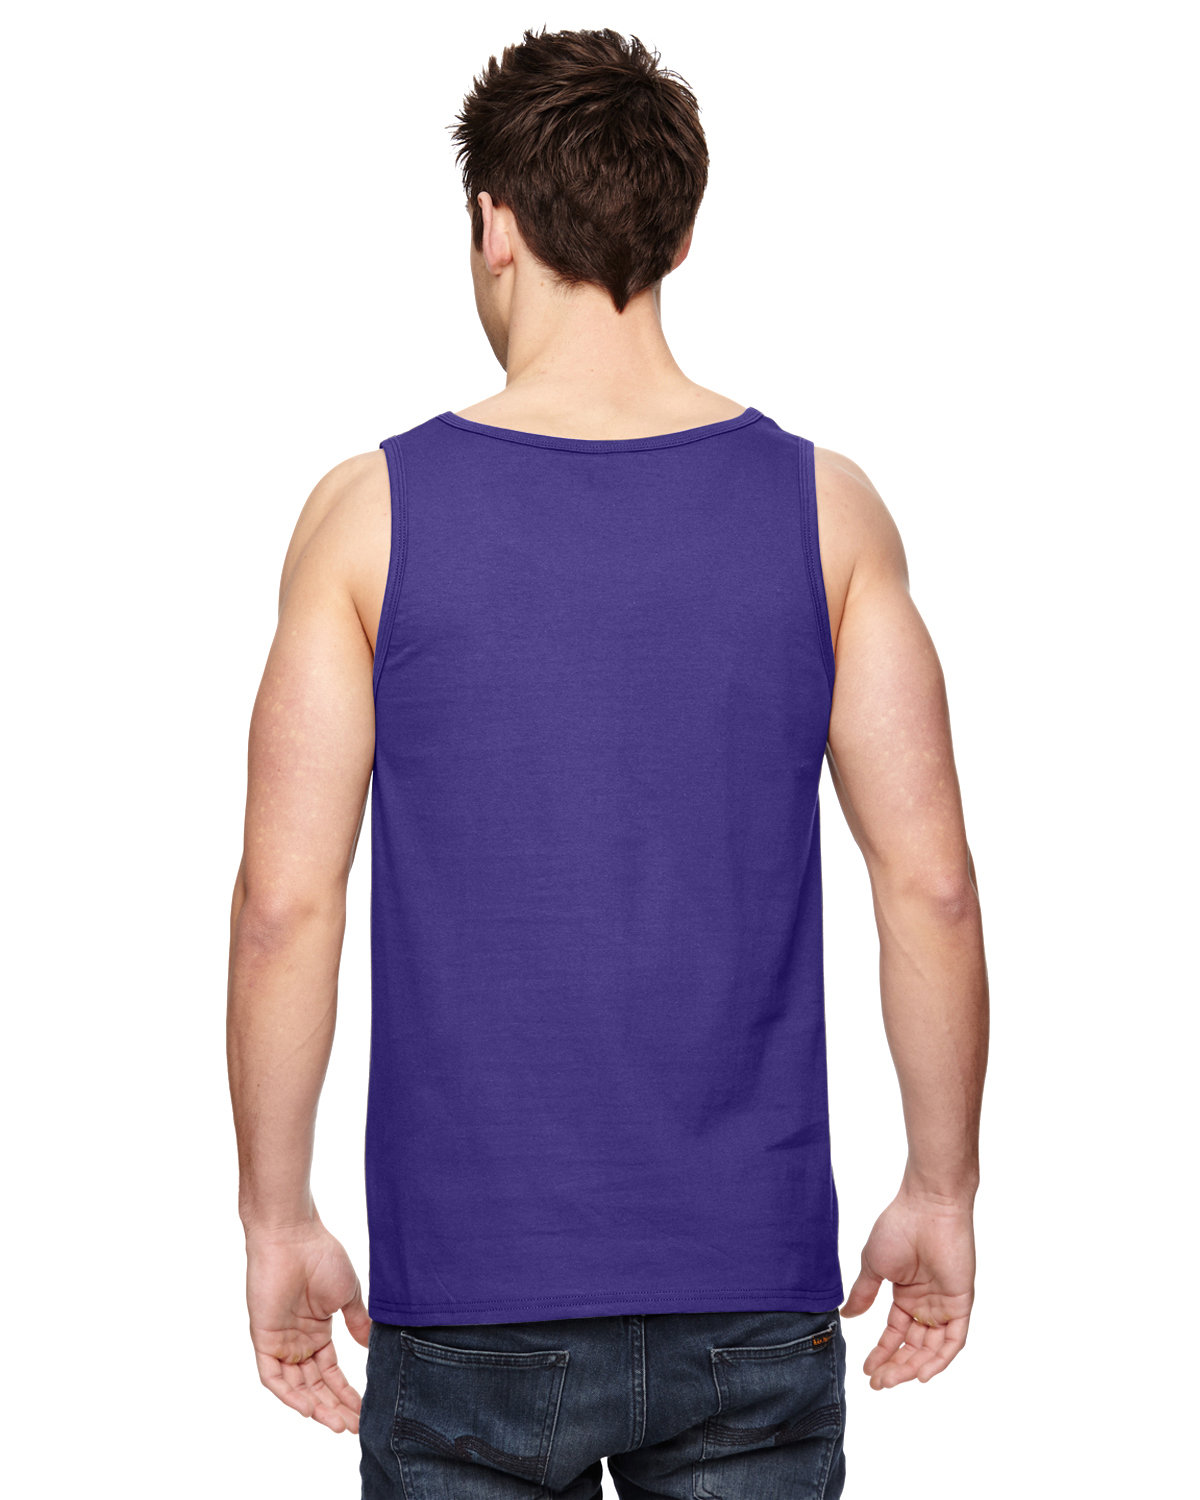 4a8580156b432 Front Back Side · Gallery View Download HiRes Design Studio. 39TKR Fruit of  the Loom Adult 5 oz. HD Cotton™ Tank